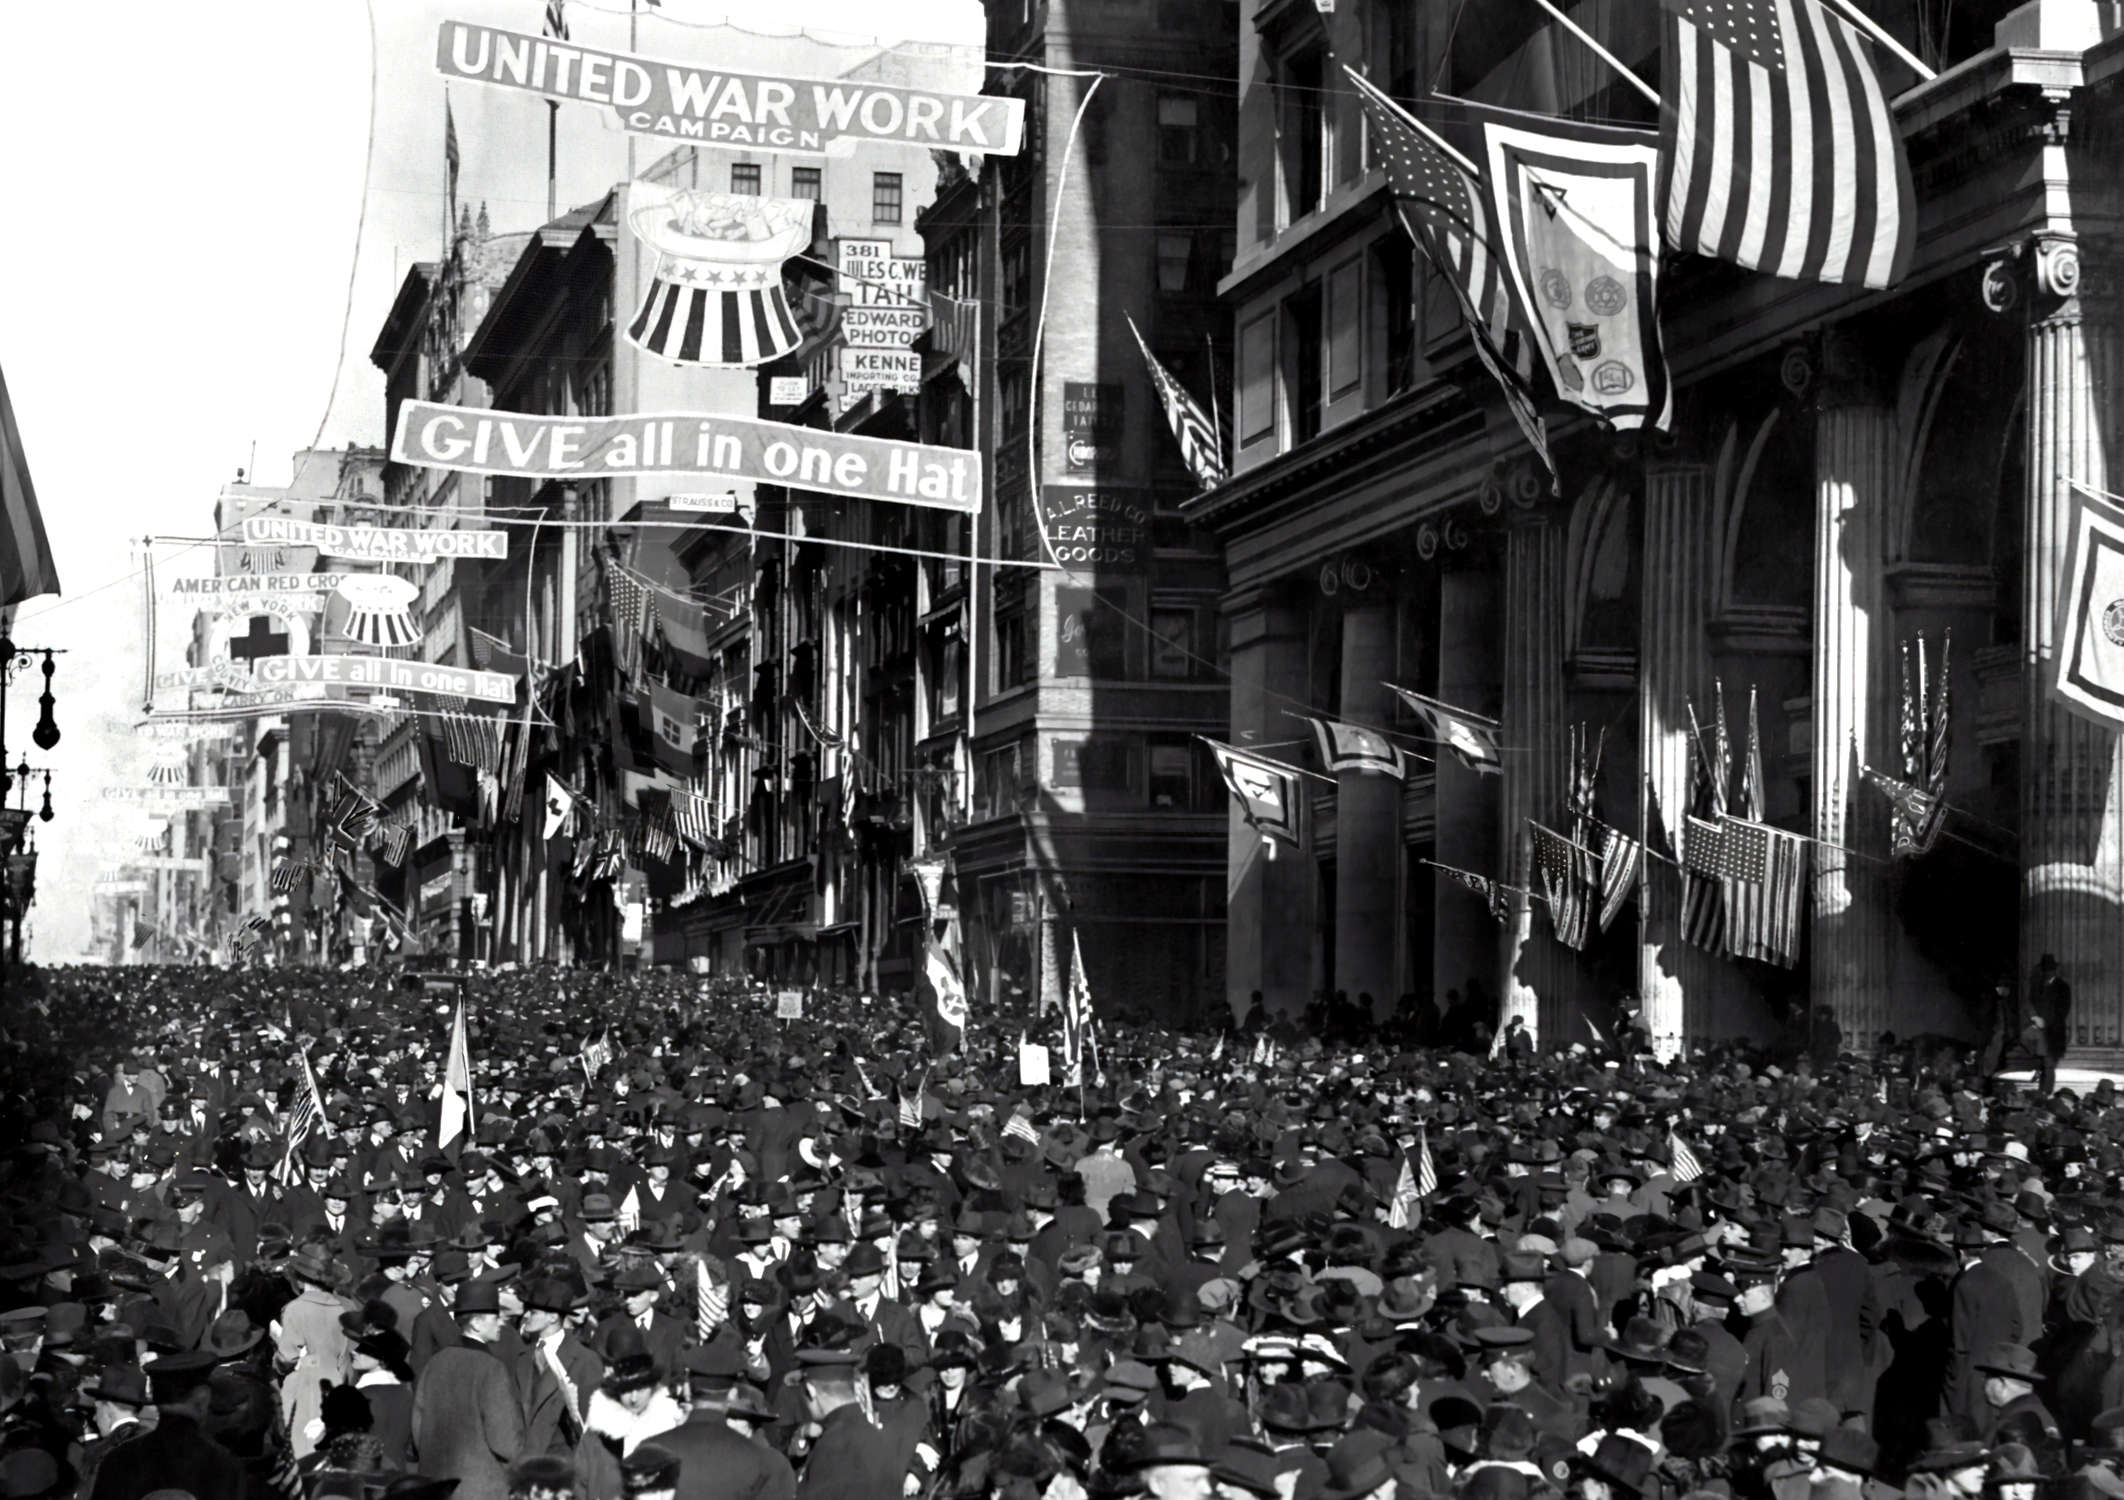 An Armistice Day celebration on Manhattan's Fifth Avenue in 1918. Photo by Paul Thompson  via The New York Times